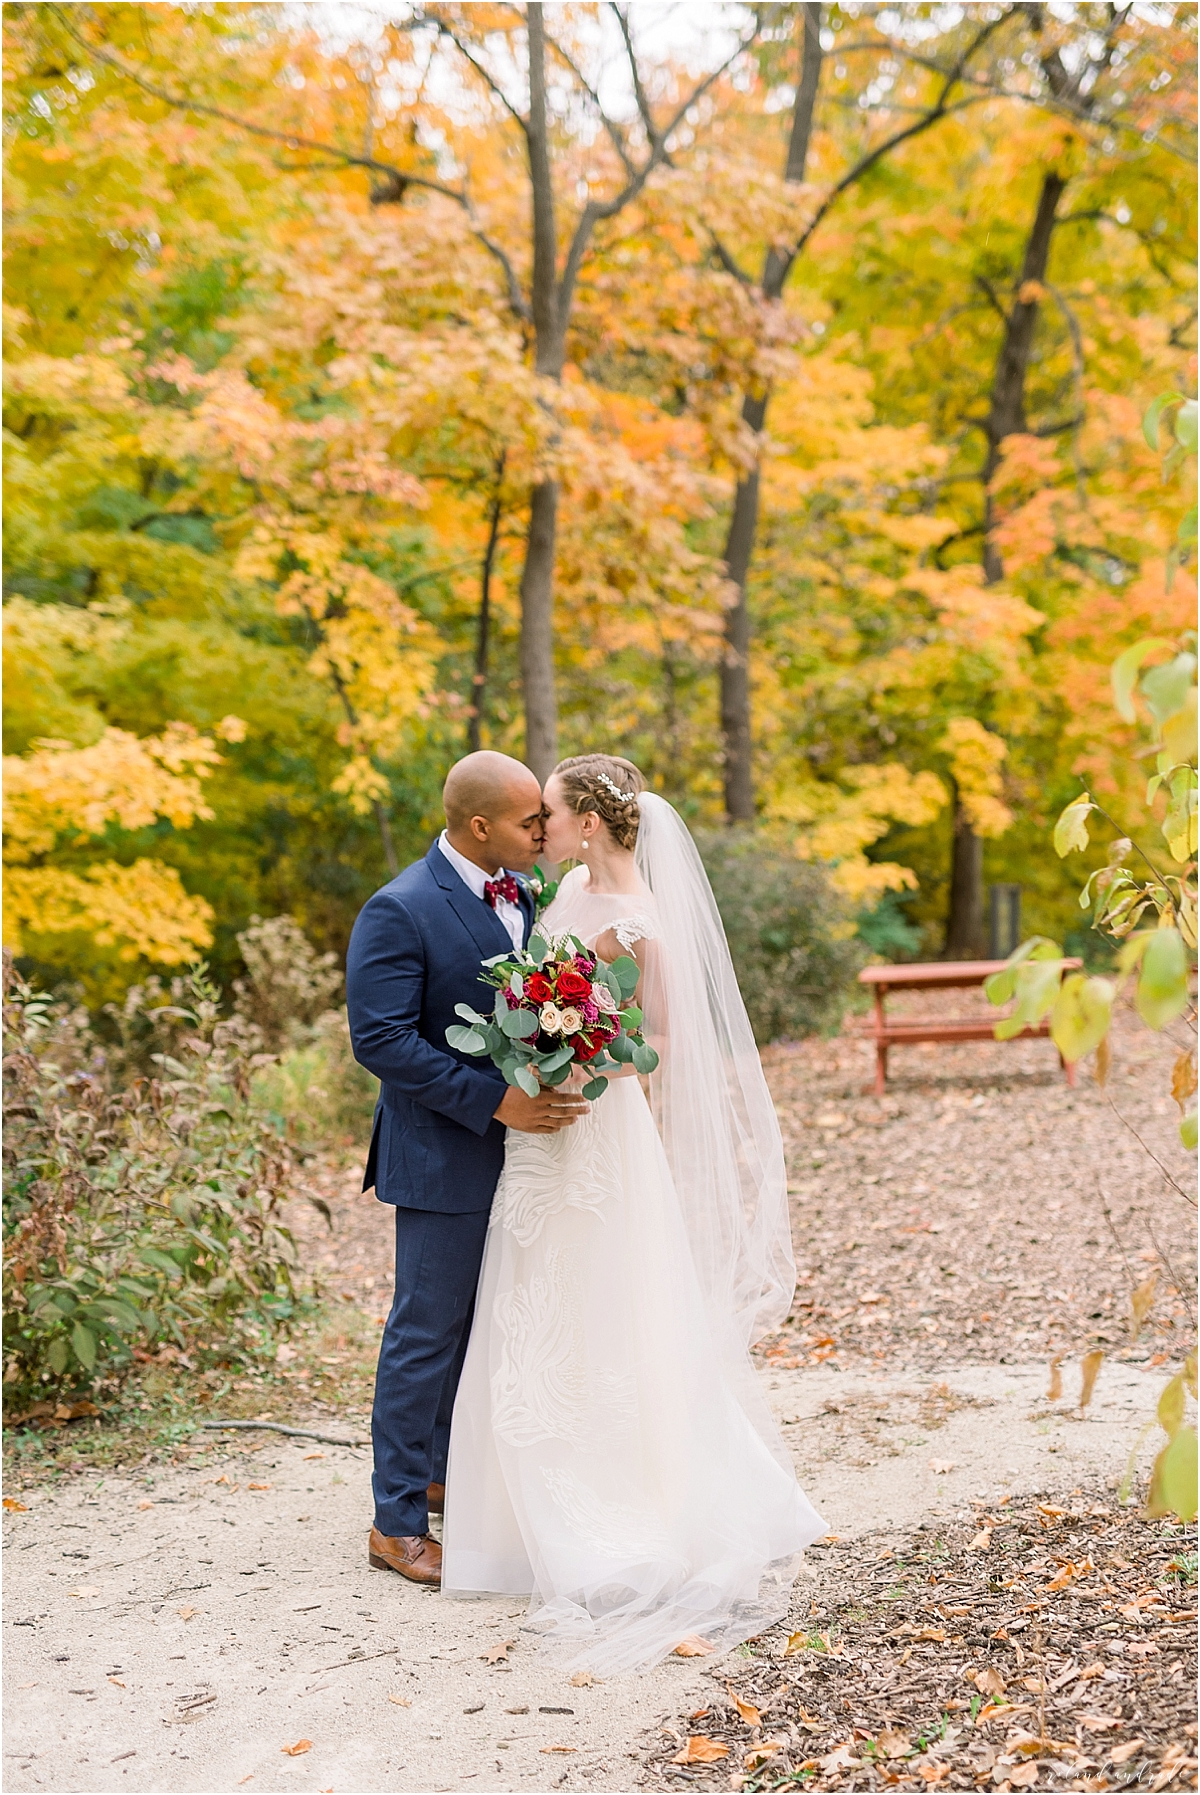 Naperville Country Club Wedding, Chicago Wedding Photographer, Naperville Wedding Photographer, Best Photographer In Aurora, Best Photographer In Chicago_0046.jpg